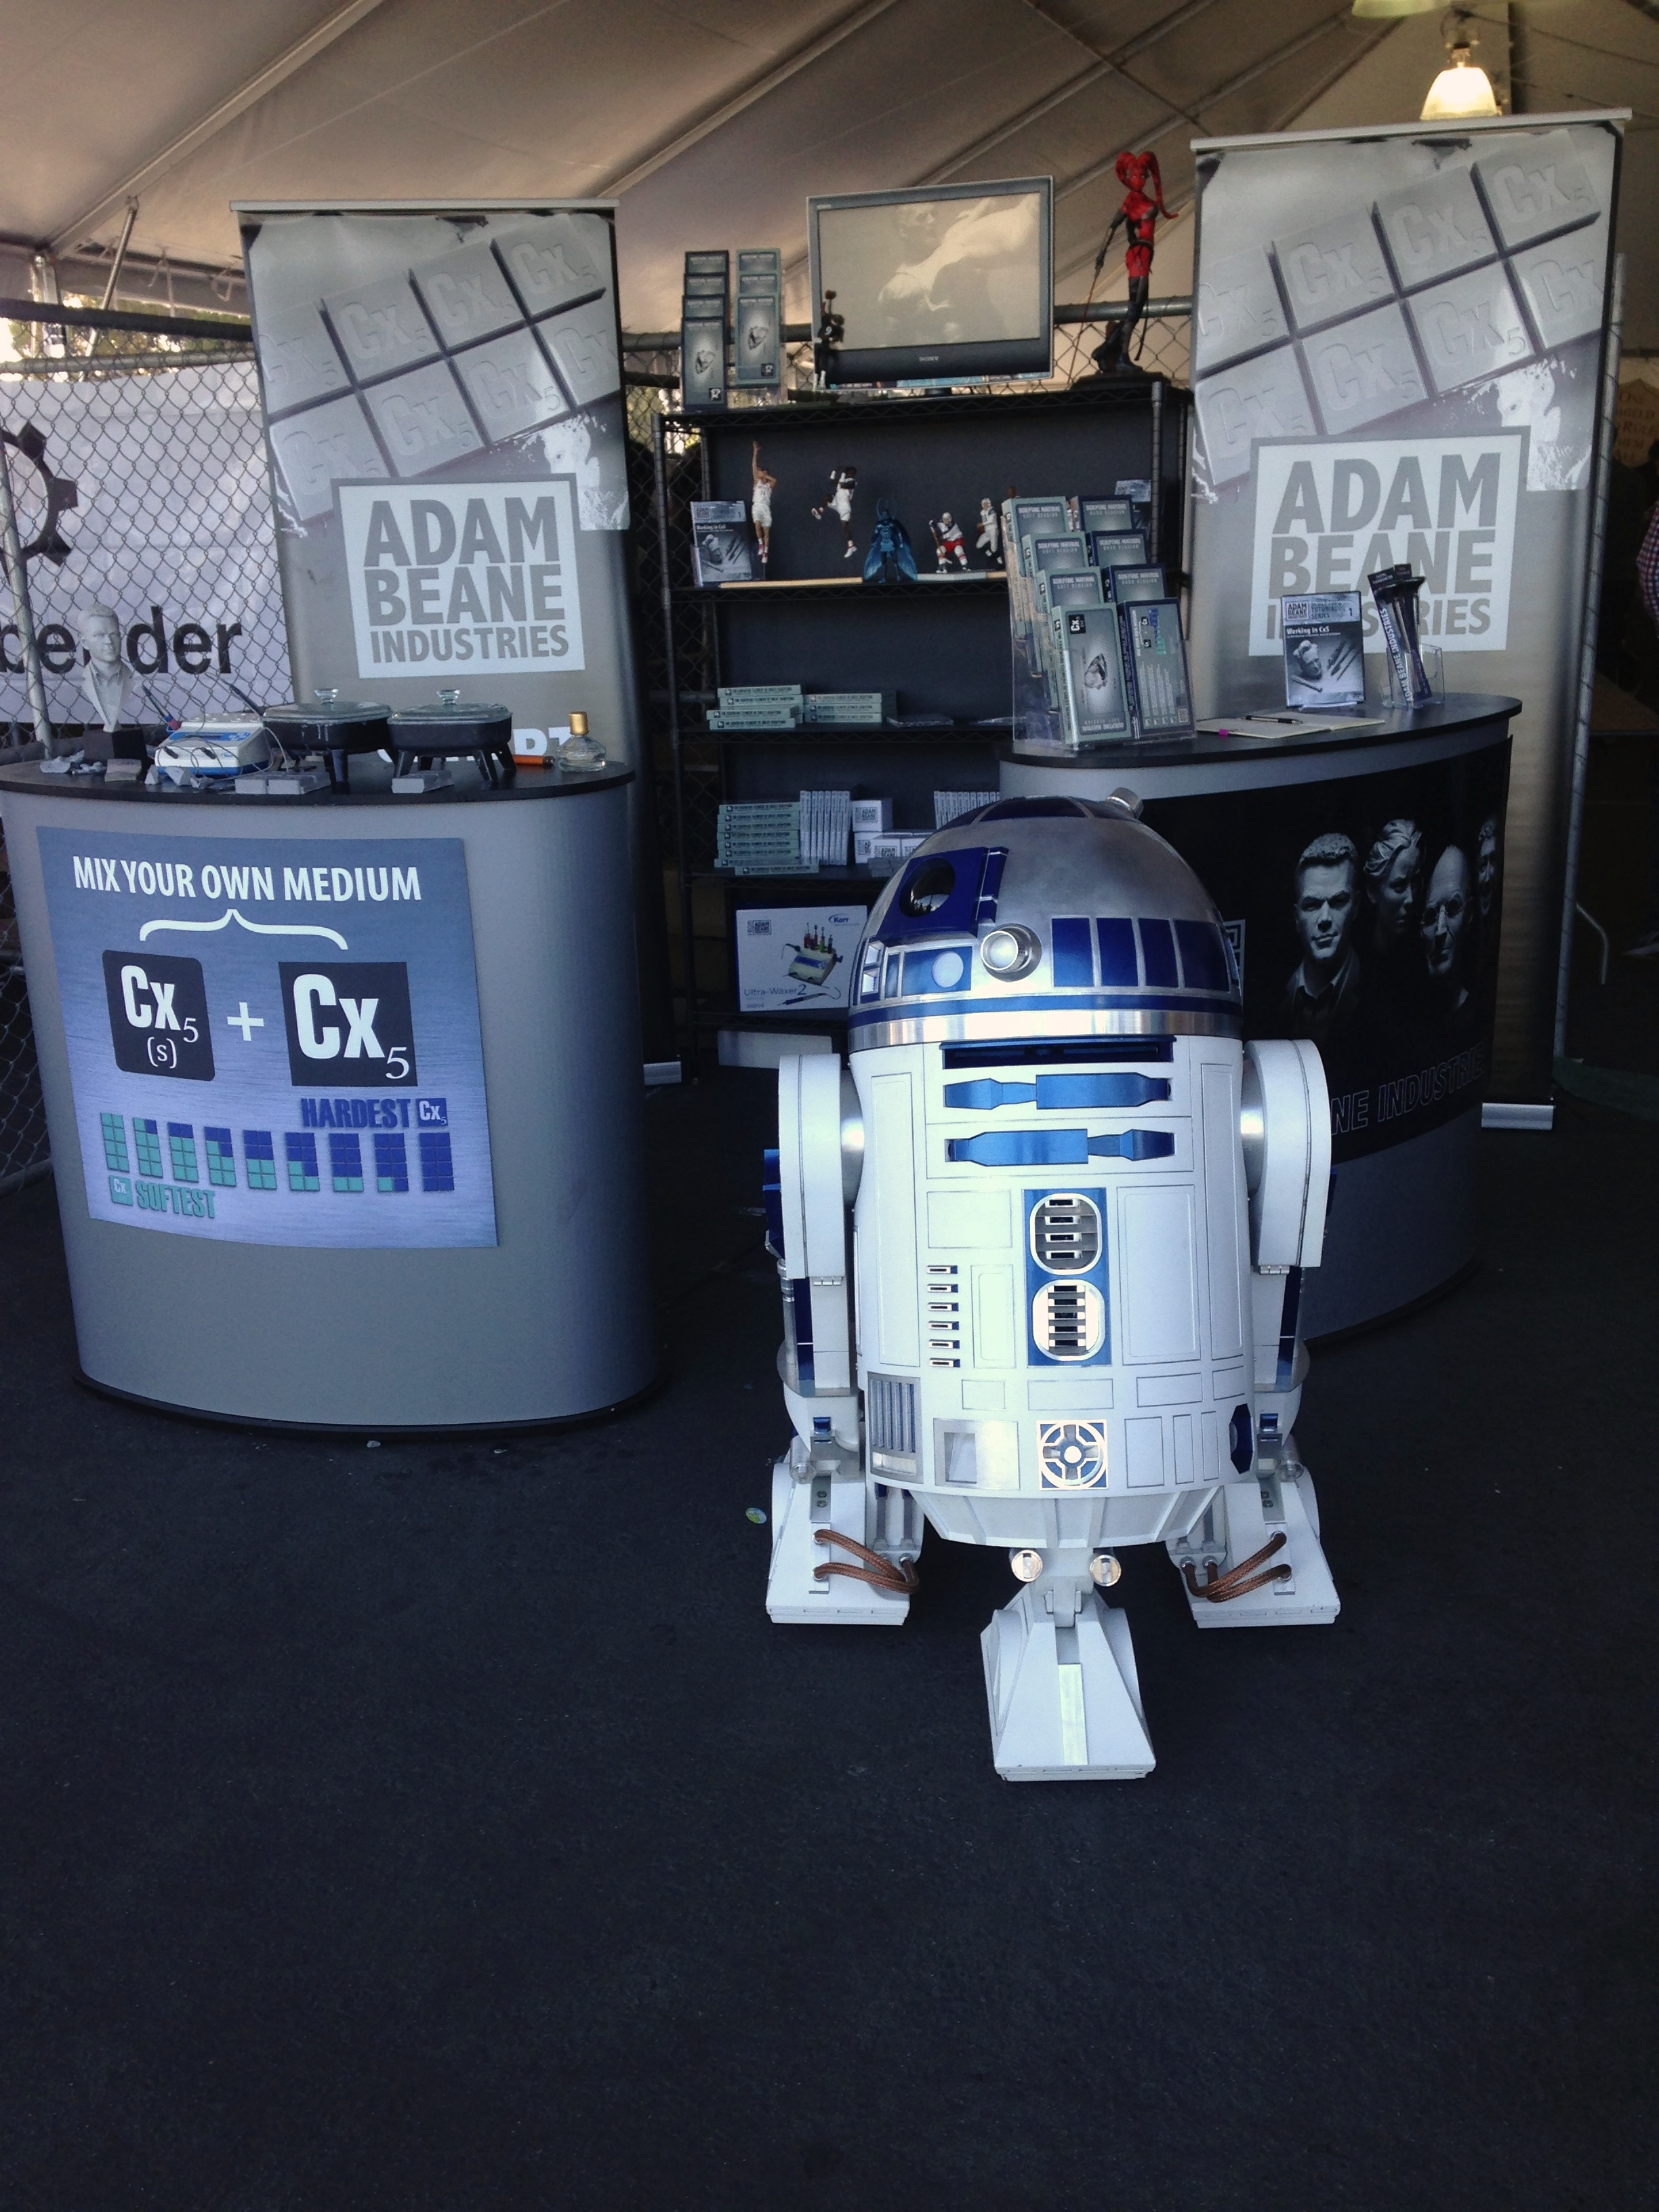 R2D2 even ran the Adam Beane Industries booth for us for a minute!